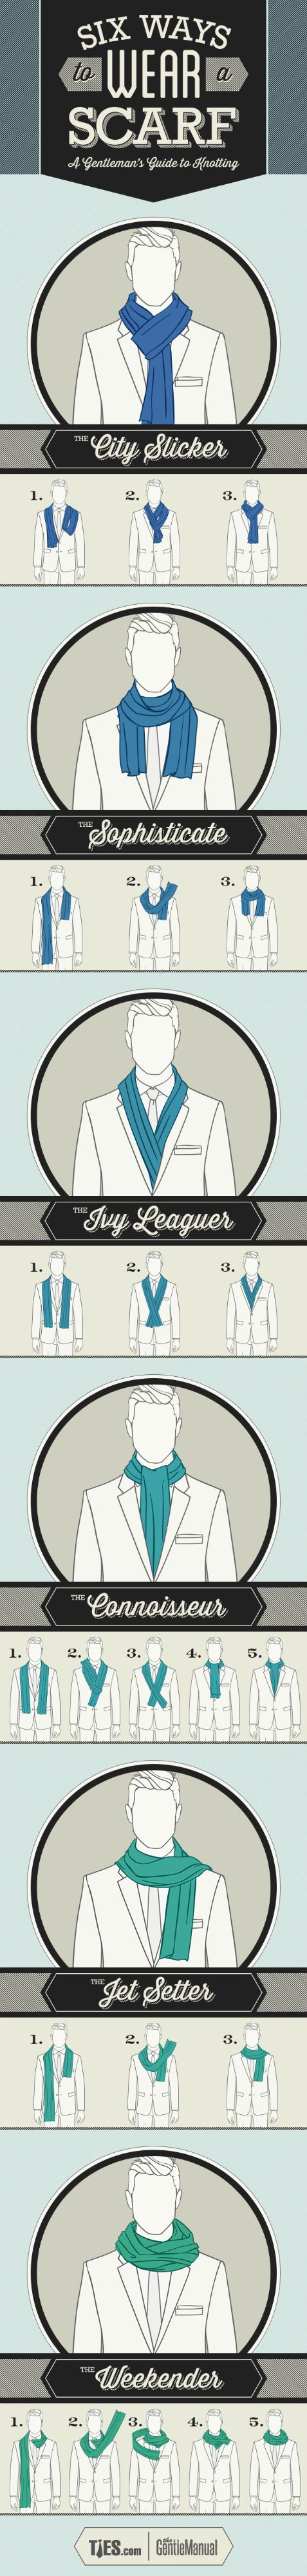 Okay Guys This Is For You: The Ultimate Gentleman Cheat Sheet [every man needs to know how to wear a scarf and totally nail it]